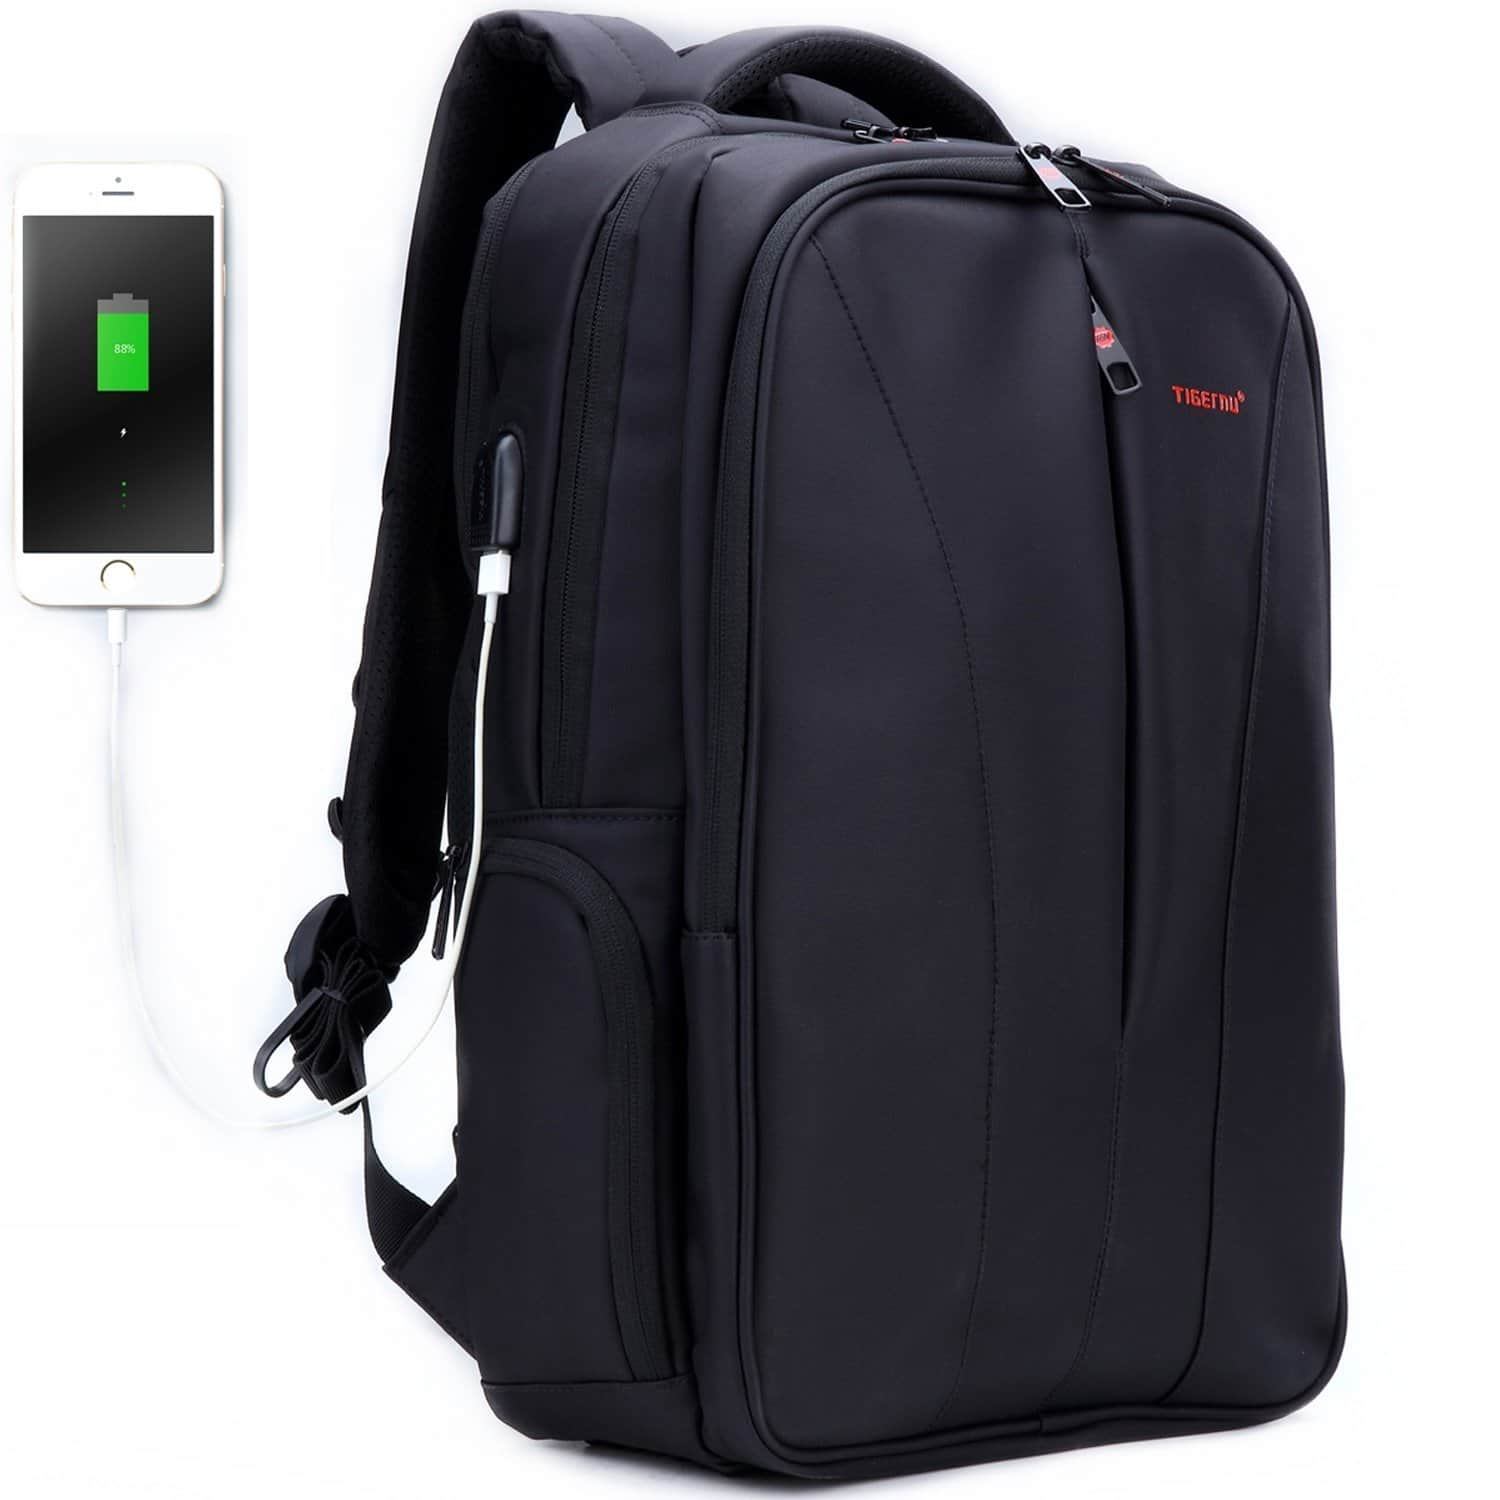 83bd21c5fa Tigernu 15.6 inches Laptop Black Backpack with USB Charging Port (Anti Theft  Water Resistant) for  19.85